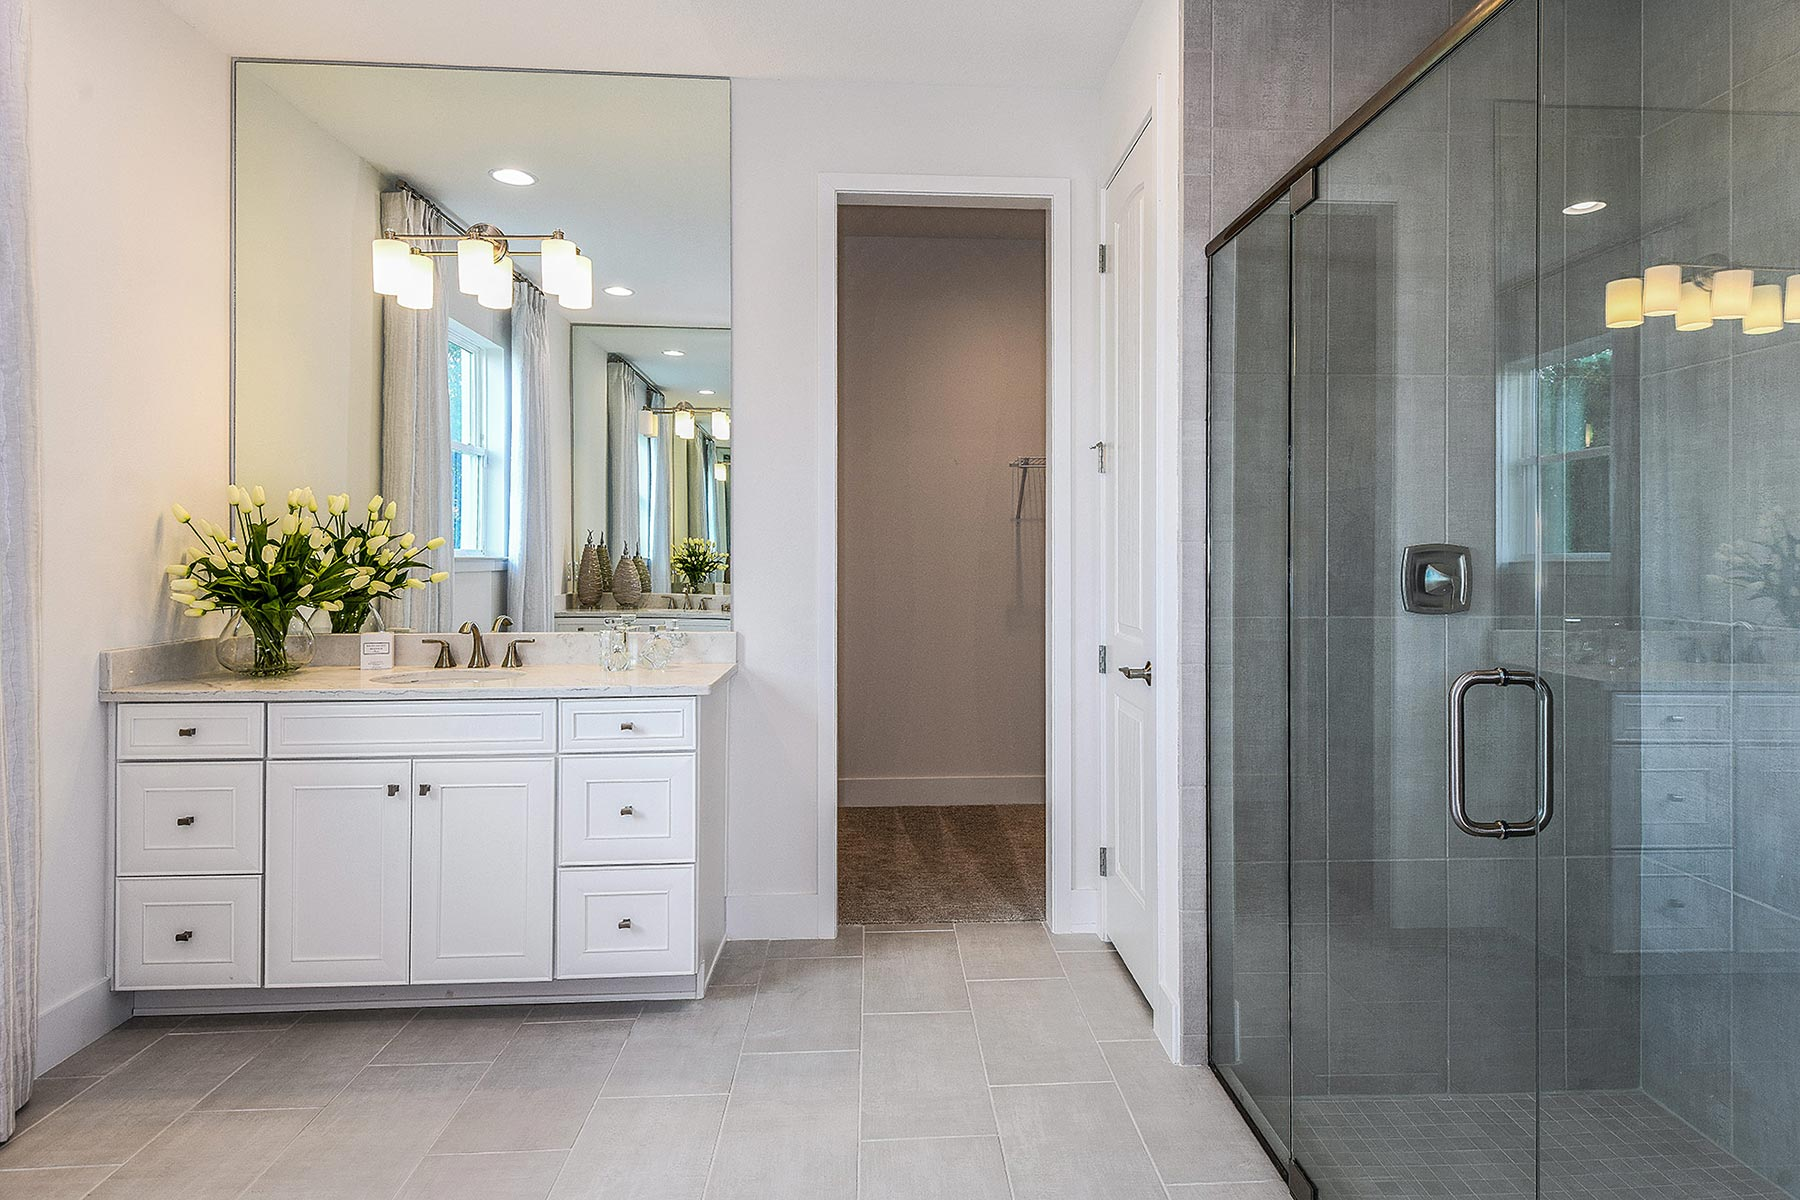 Jubilee Plan Bathroom_Master Bath at Sunrise Preserve at Palmer Ranch in Sarasota Florida by Mattamy Homes